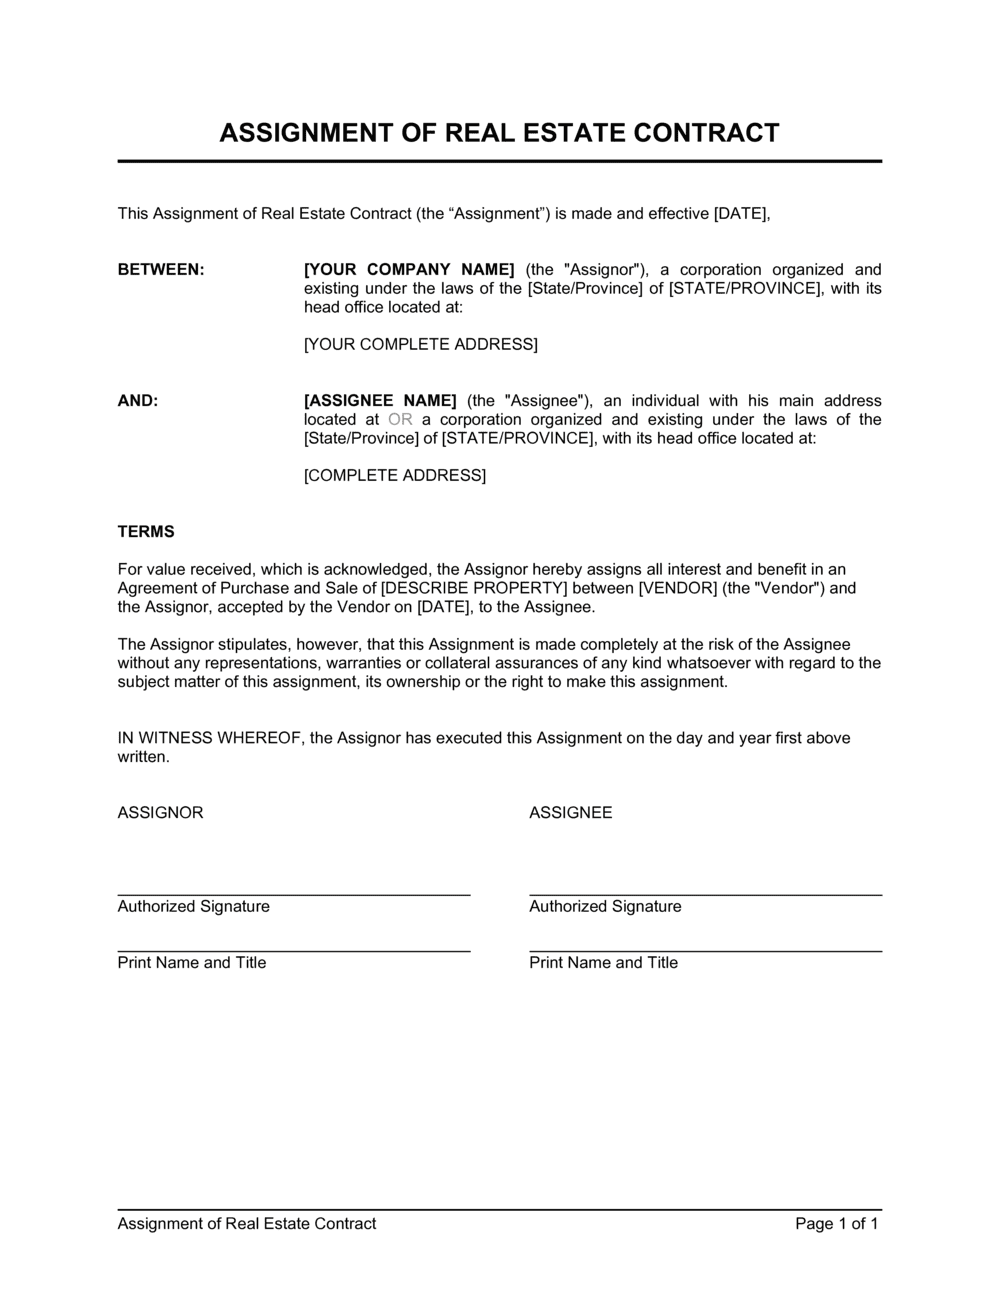 Business-in-a-Box's Assignment of Real Estate Contract Template